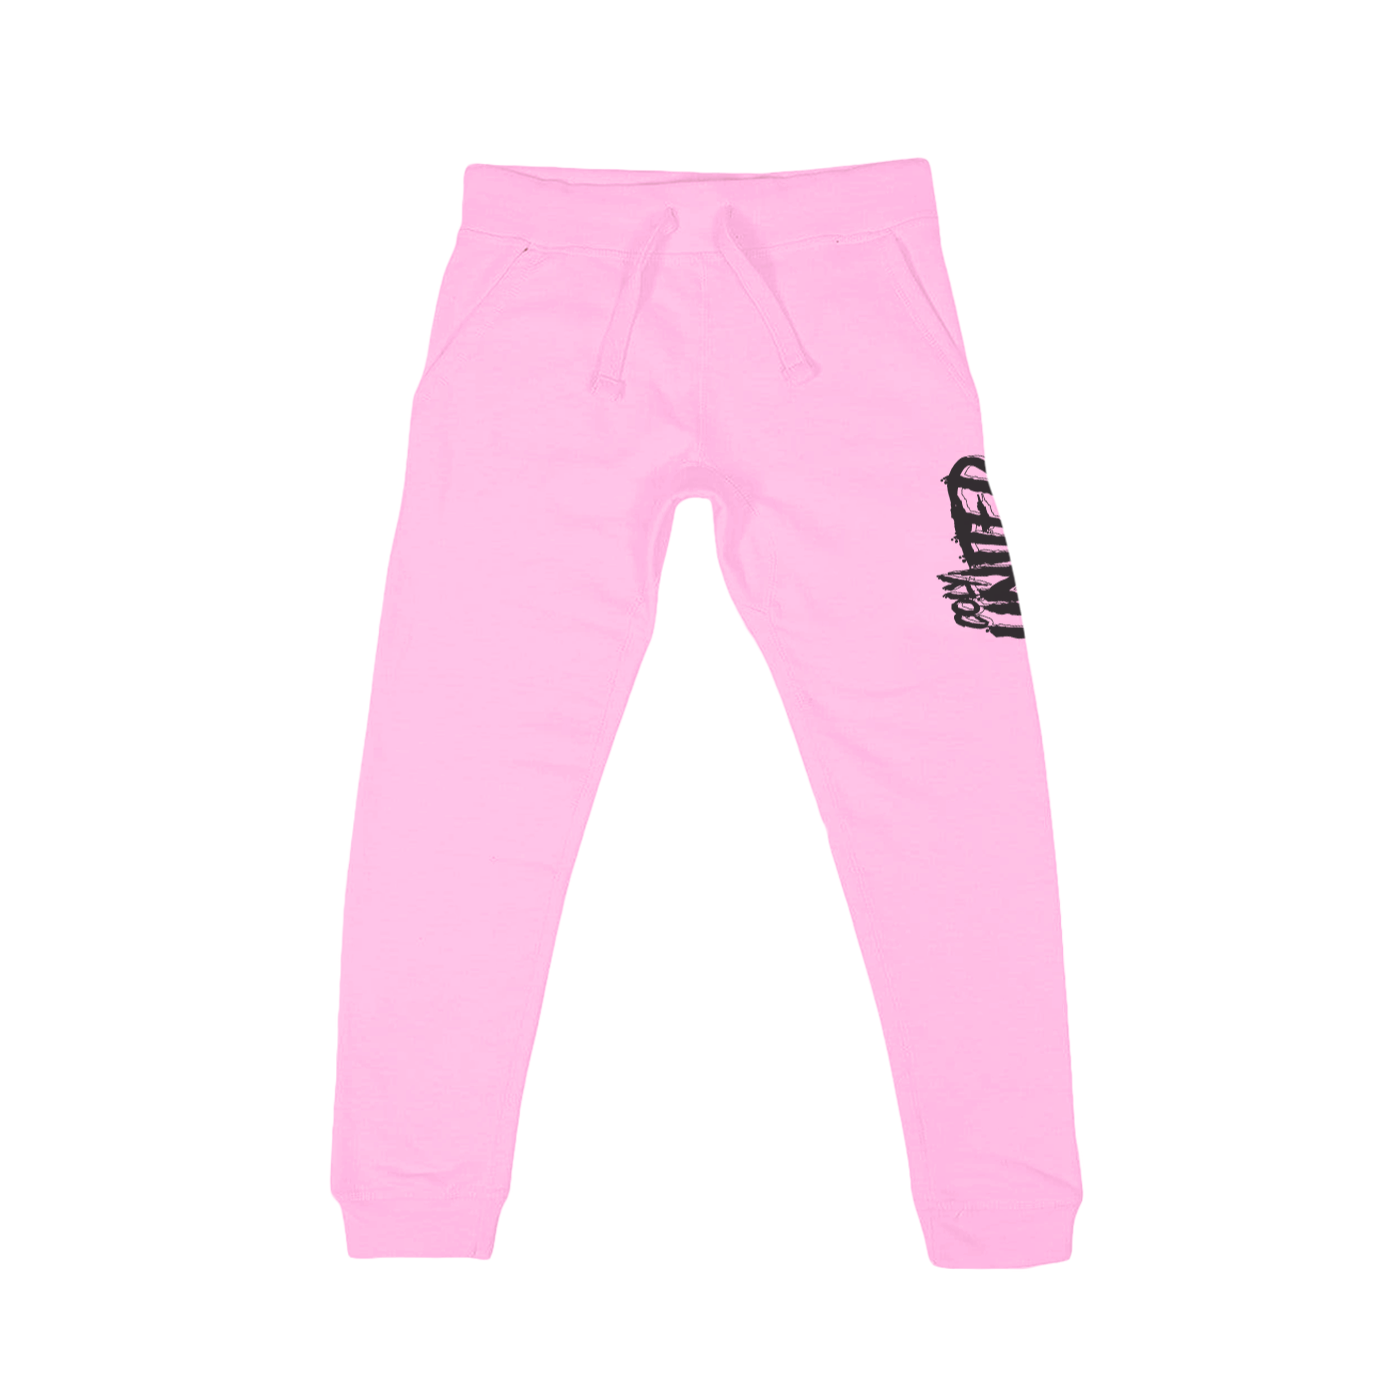 COLY UNITED JOGGERS - PINK/BLACK